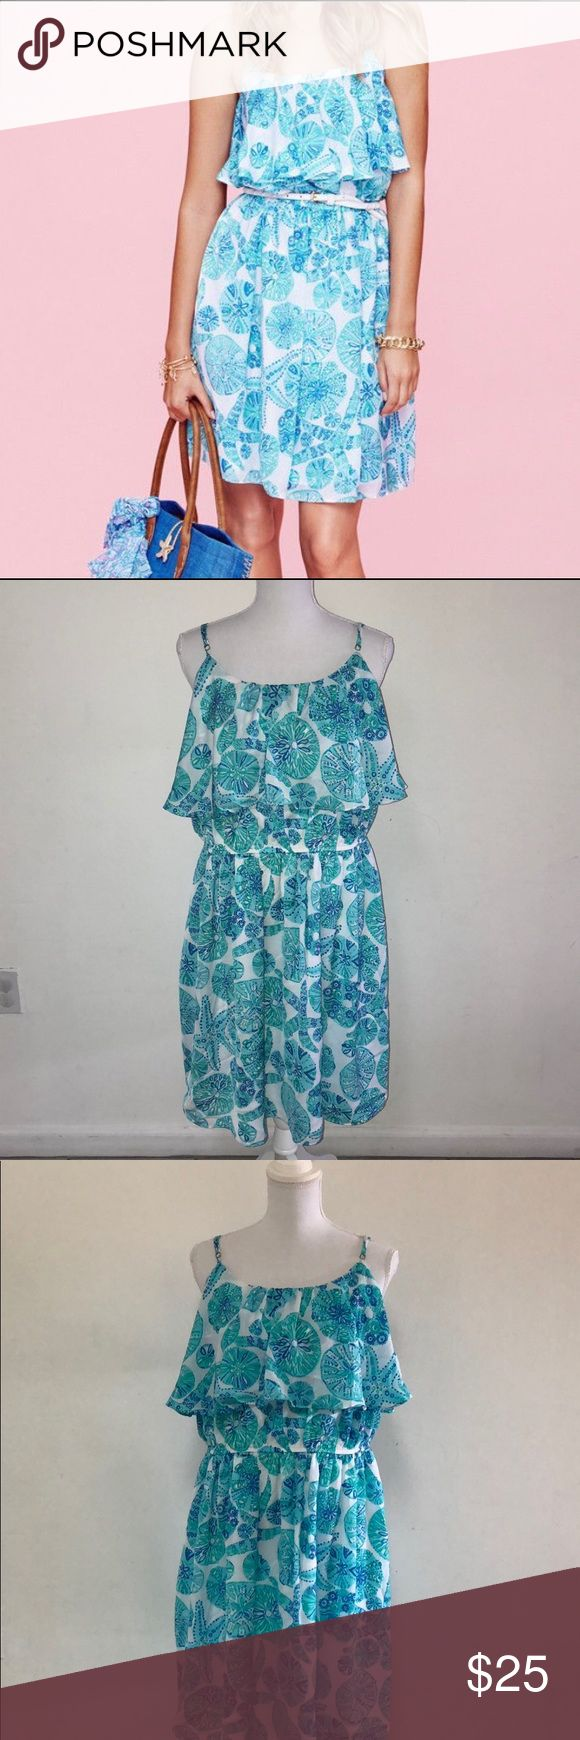 "NWT Lilly Pulitzer for Tagert Sea Urchin Dress!! *belt not inlcuded. New with tags. Ruffled Neck line. Adjustable Spaghetti Straps. Lined. Price is firm. Measurements were taken laying flat and are approx.: Bust: 20 1/2"" Waist: 17"" Hip: 21"" Length: 36"" 100% polyester Lilly Pulitzer for Target Dresses Mini"